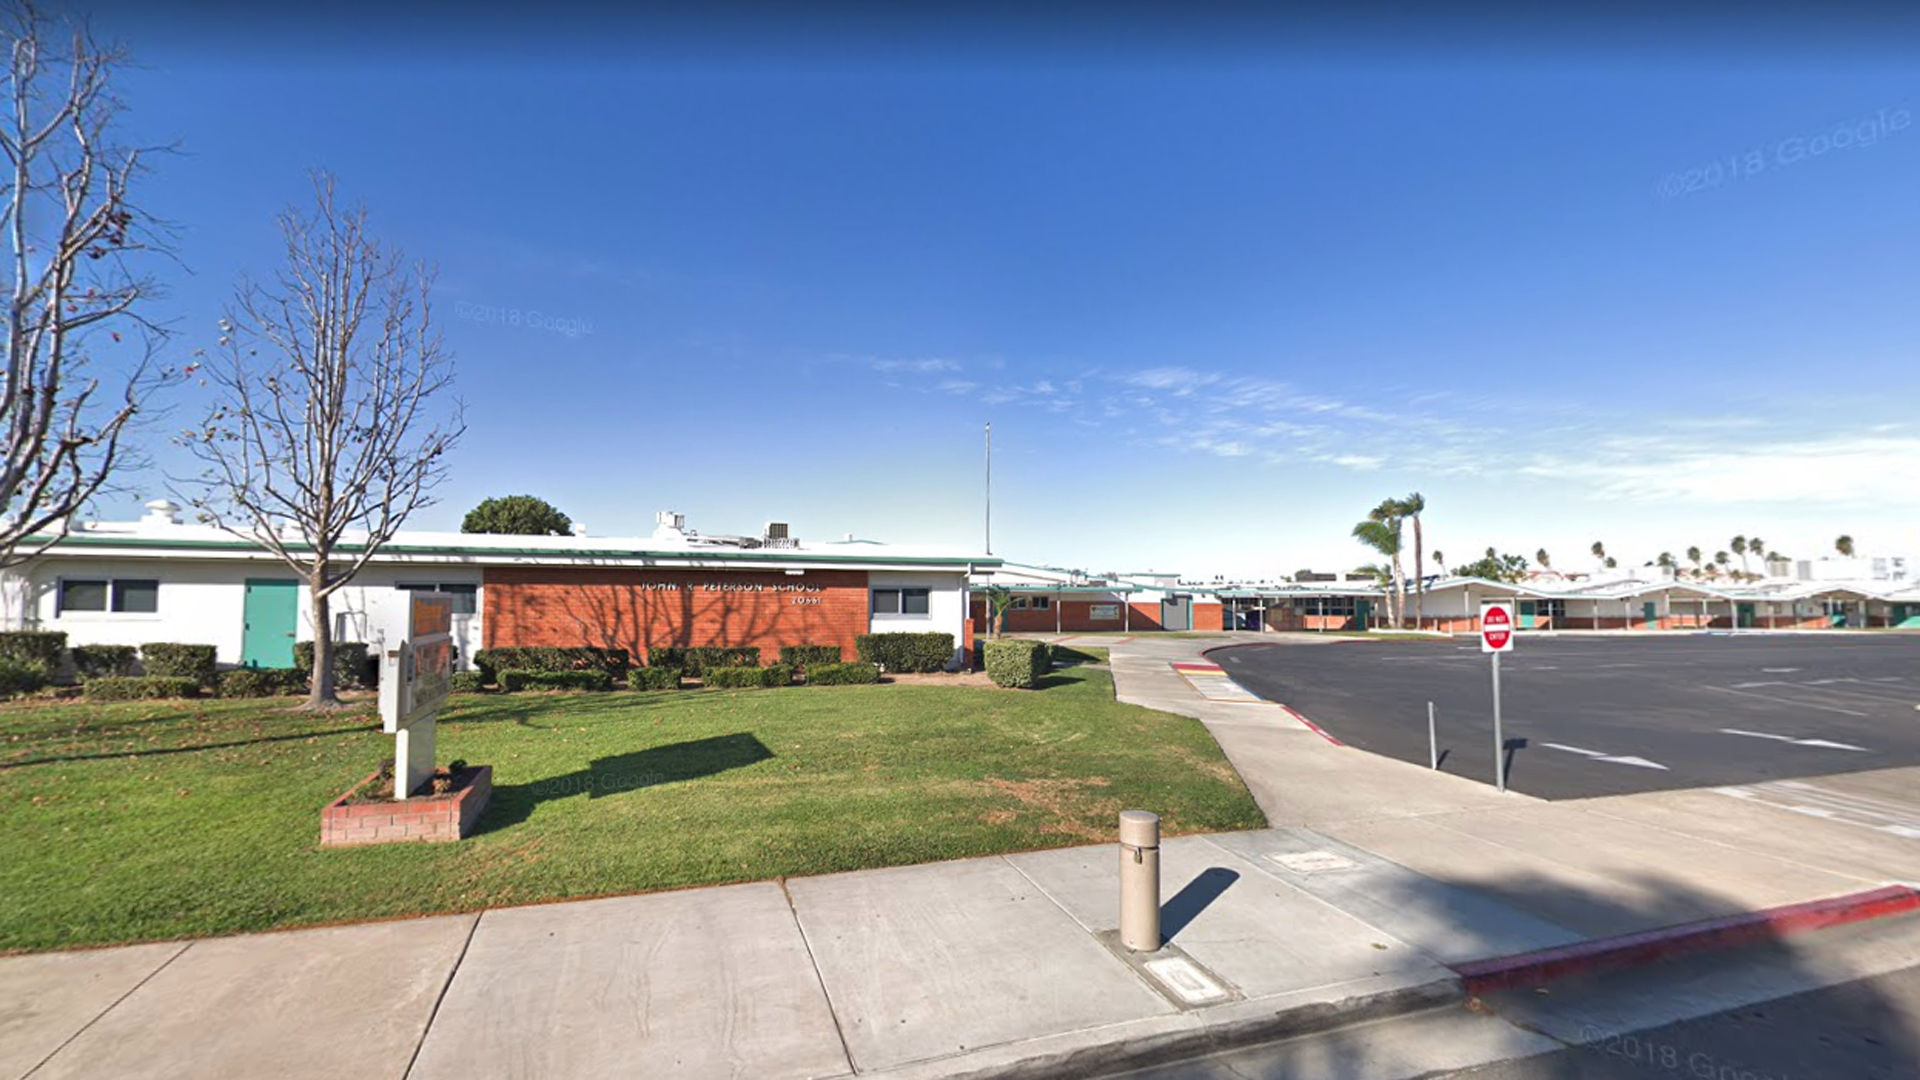 John R. Peterson Elementary School in Huntington Beach is seen in this undated image from Google Maps.